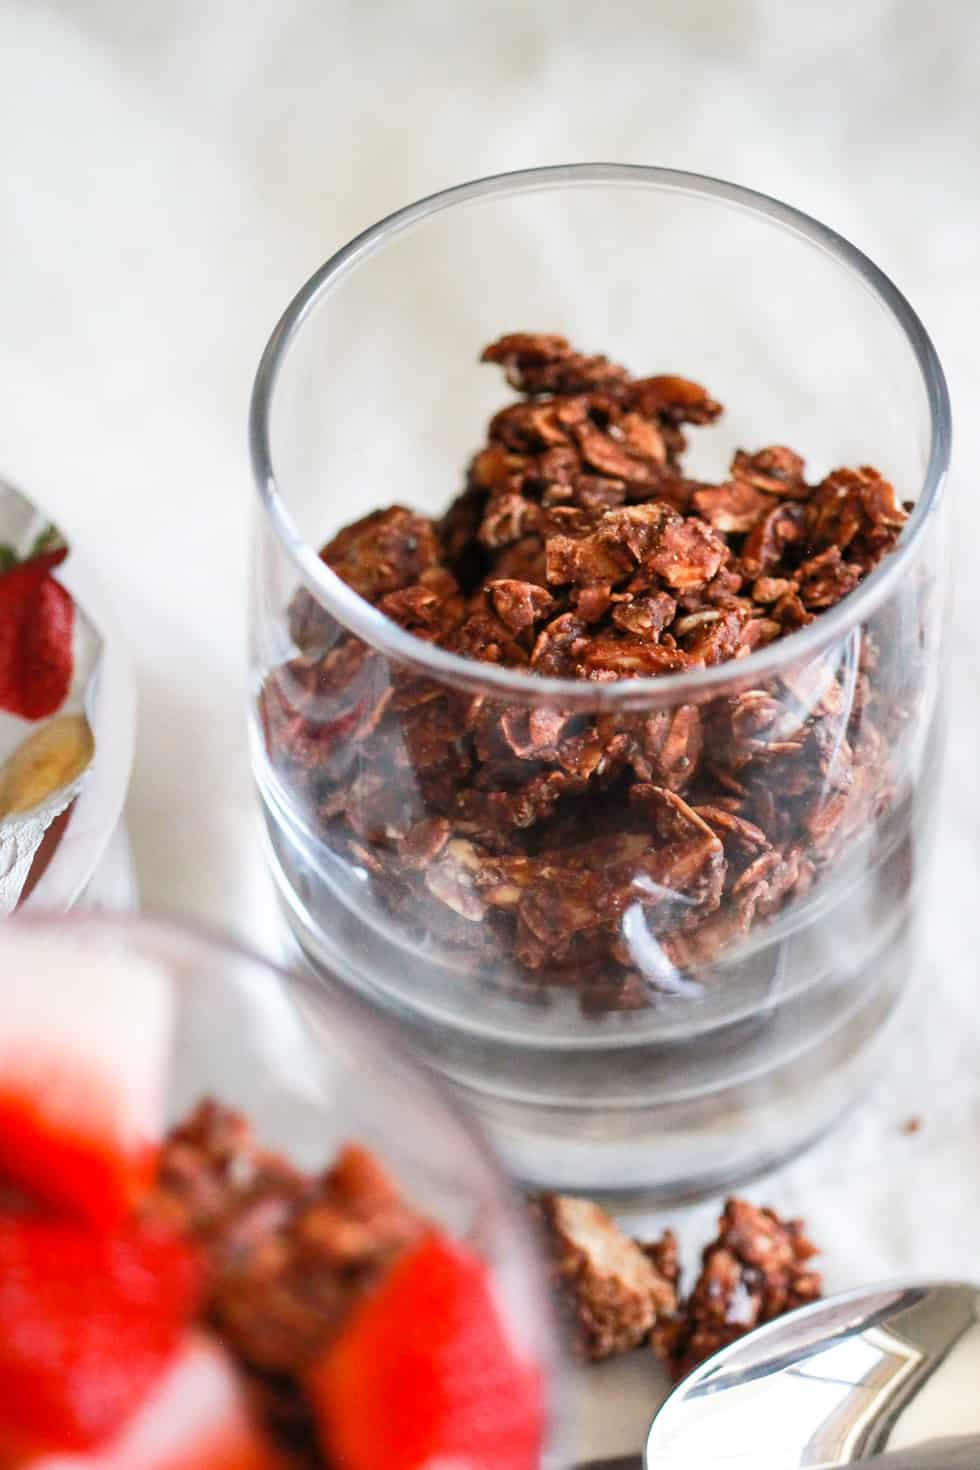 Chocolate chia seed granola in a glass.